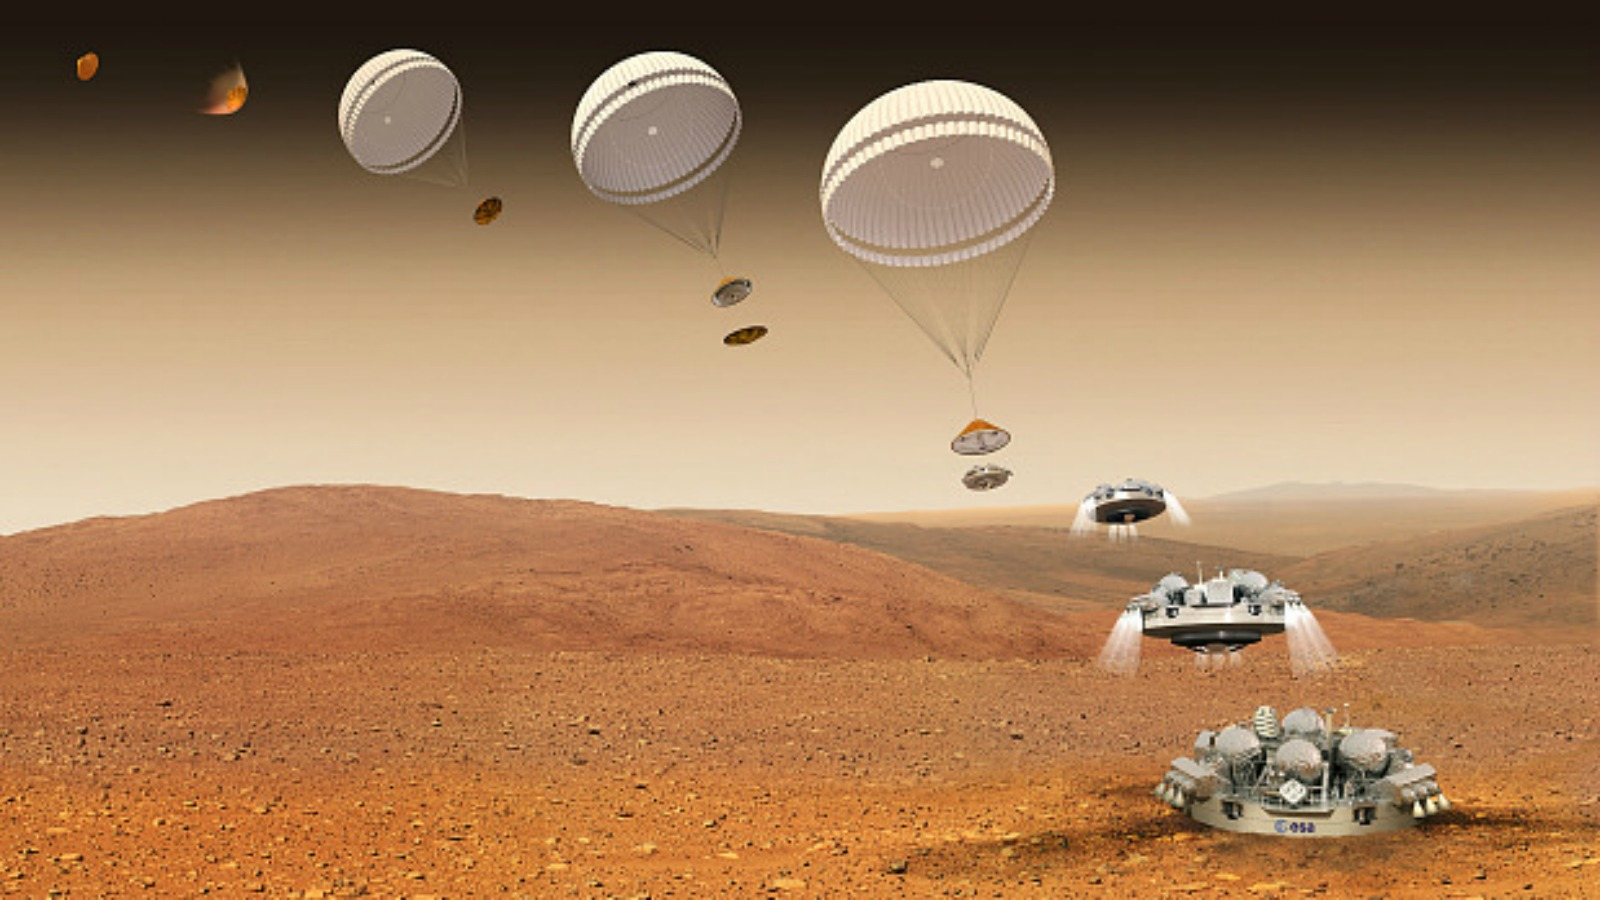 landing on the mars - photo #11